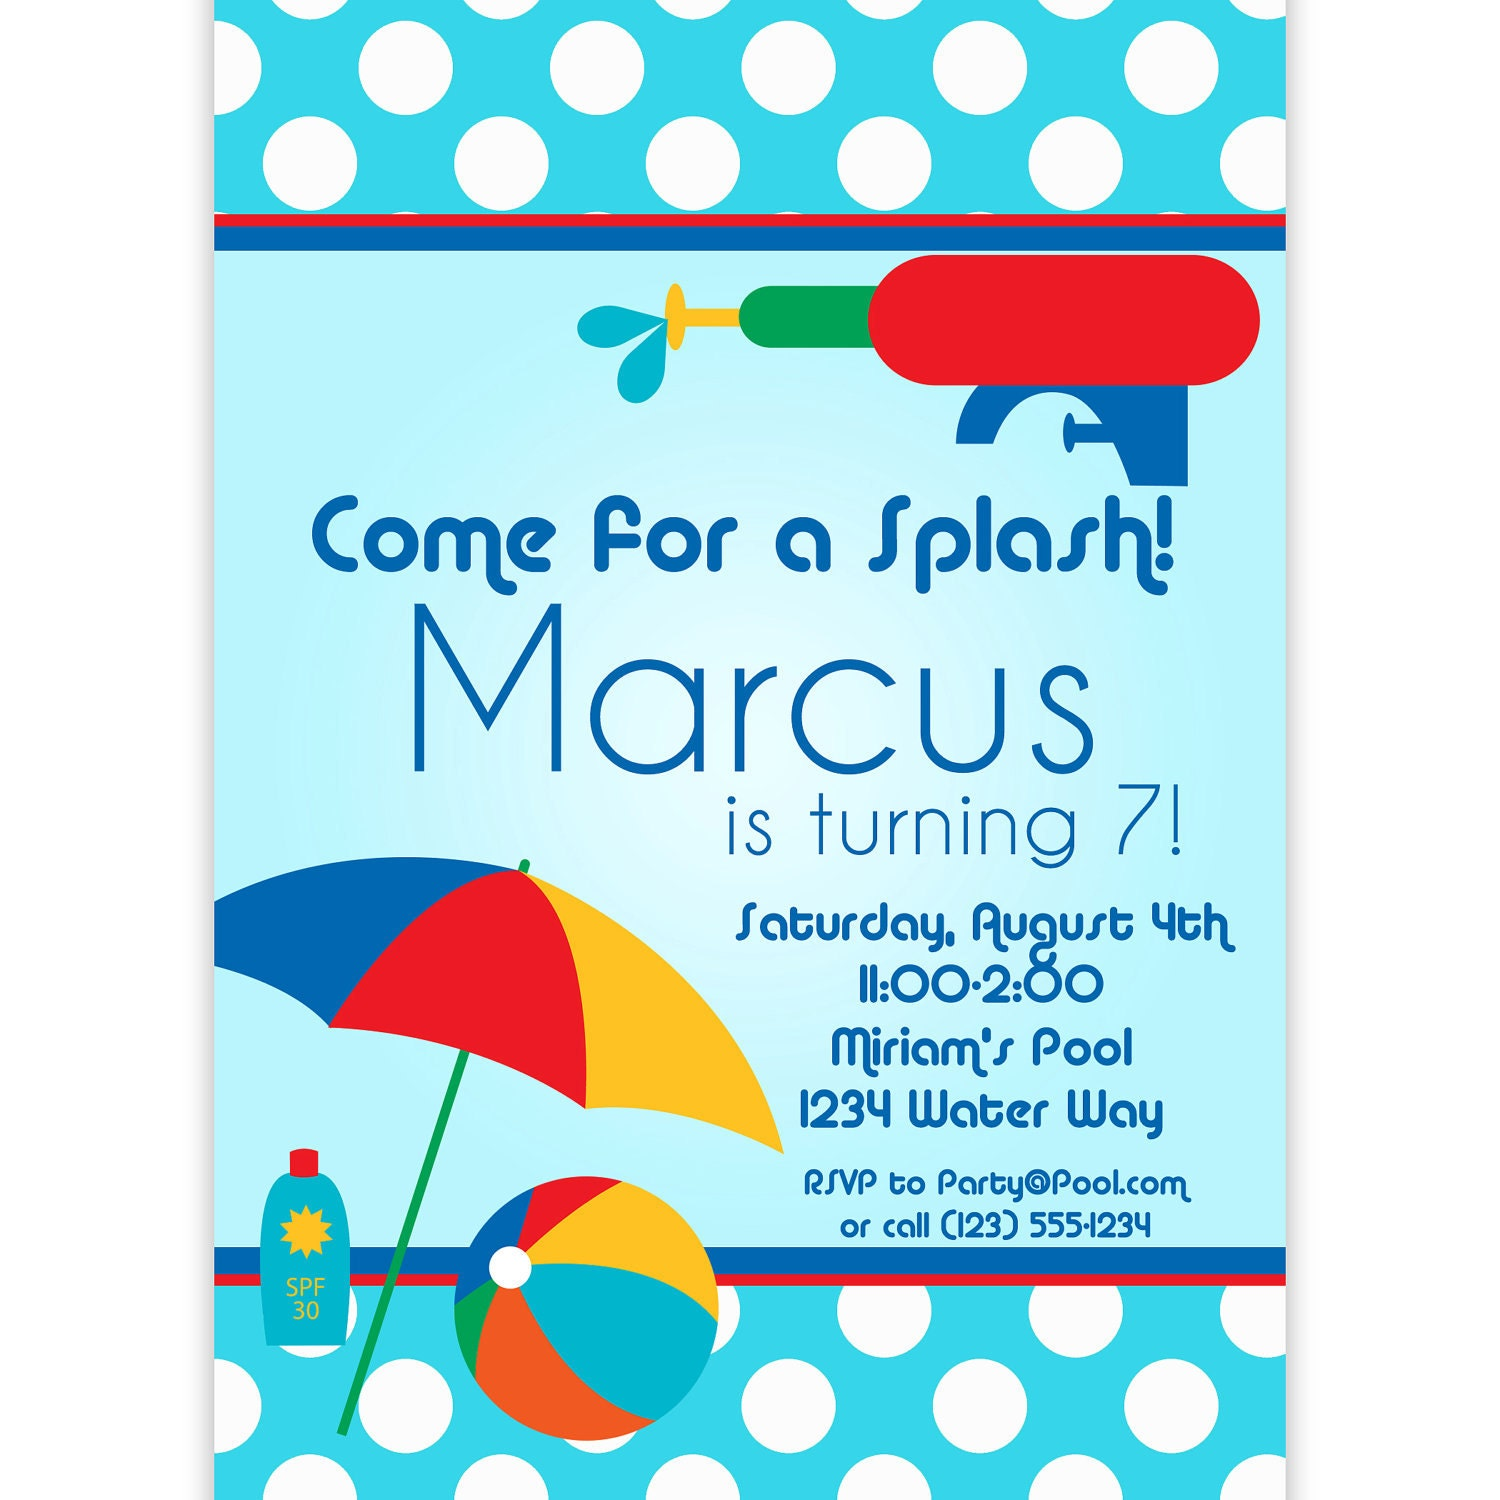 Pool Party Invitation Blue Polka Dots And Red Water Squirt. Business Proposal For Photography Services. Truck Driver Resume Example. Letter Asking For A Job Template. Printable Generic Application For Employment Template. Site Word Flash Cards Template. Sample Of Emergency Leave Template. Resume Examples For Military Template. Equipment Downtime Tracking Excel